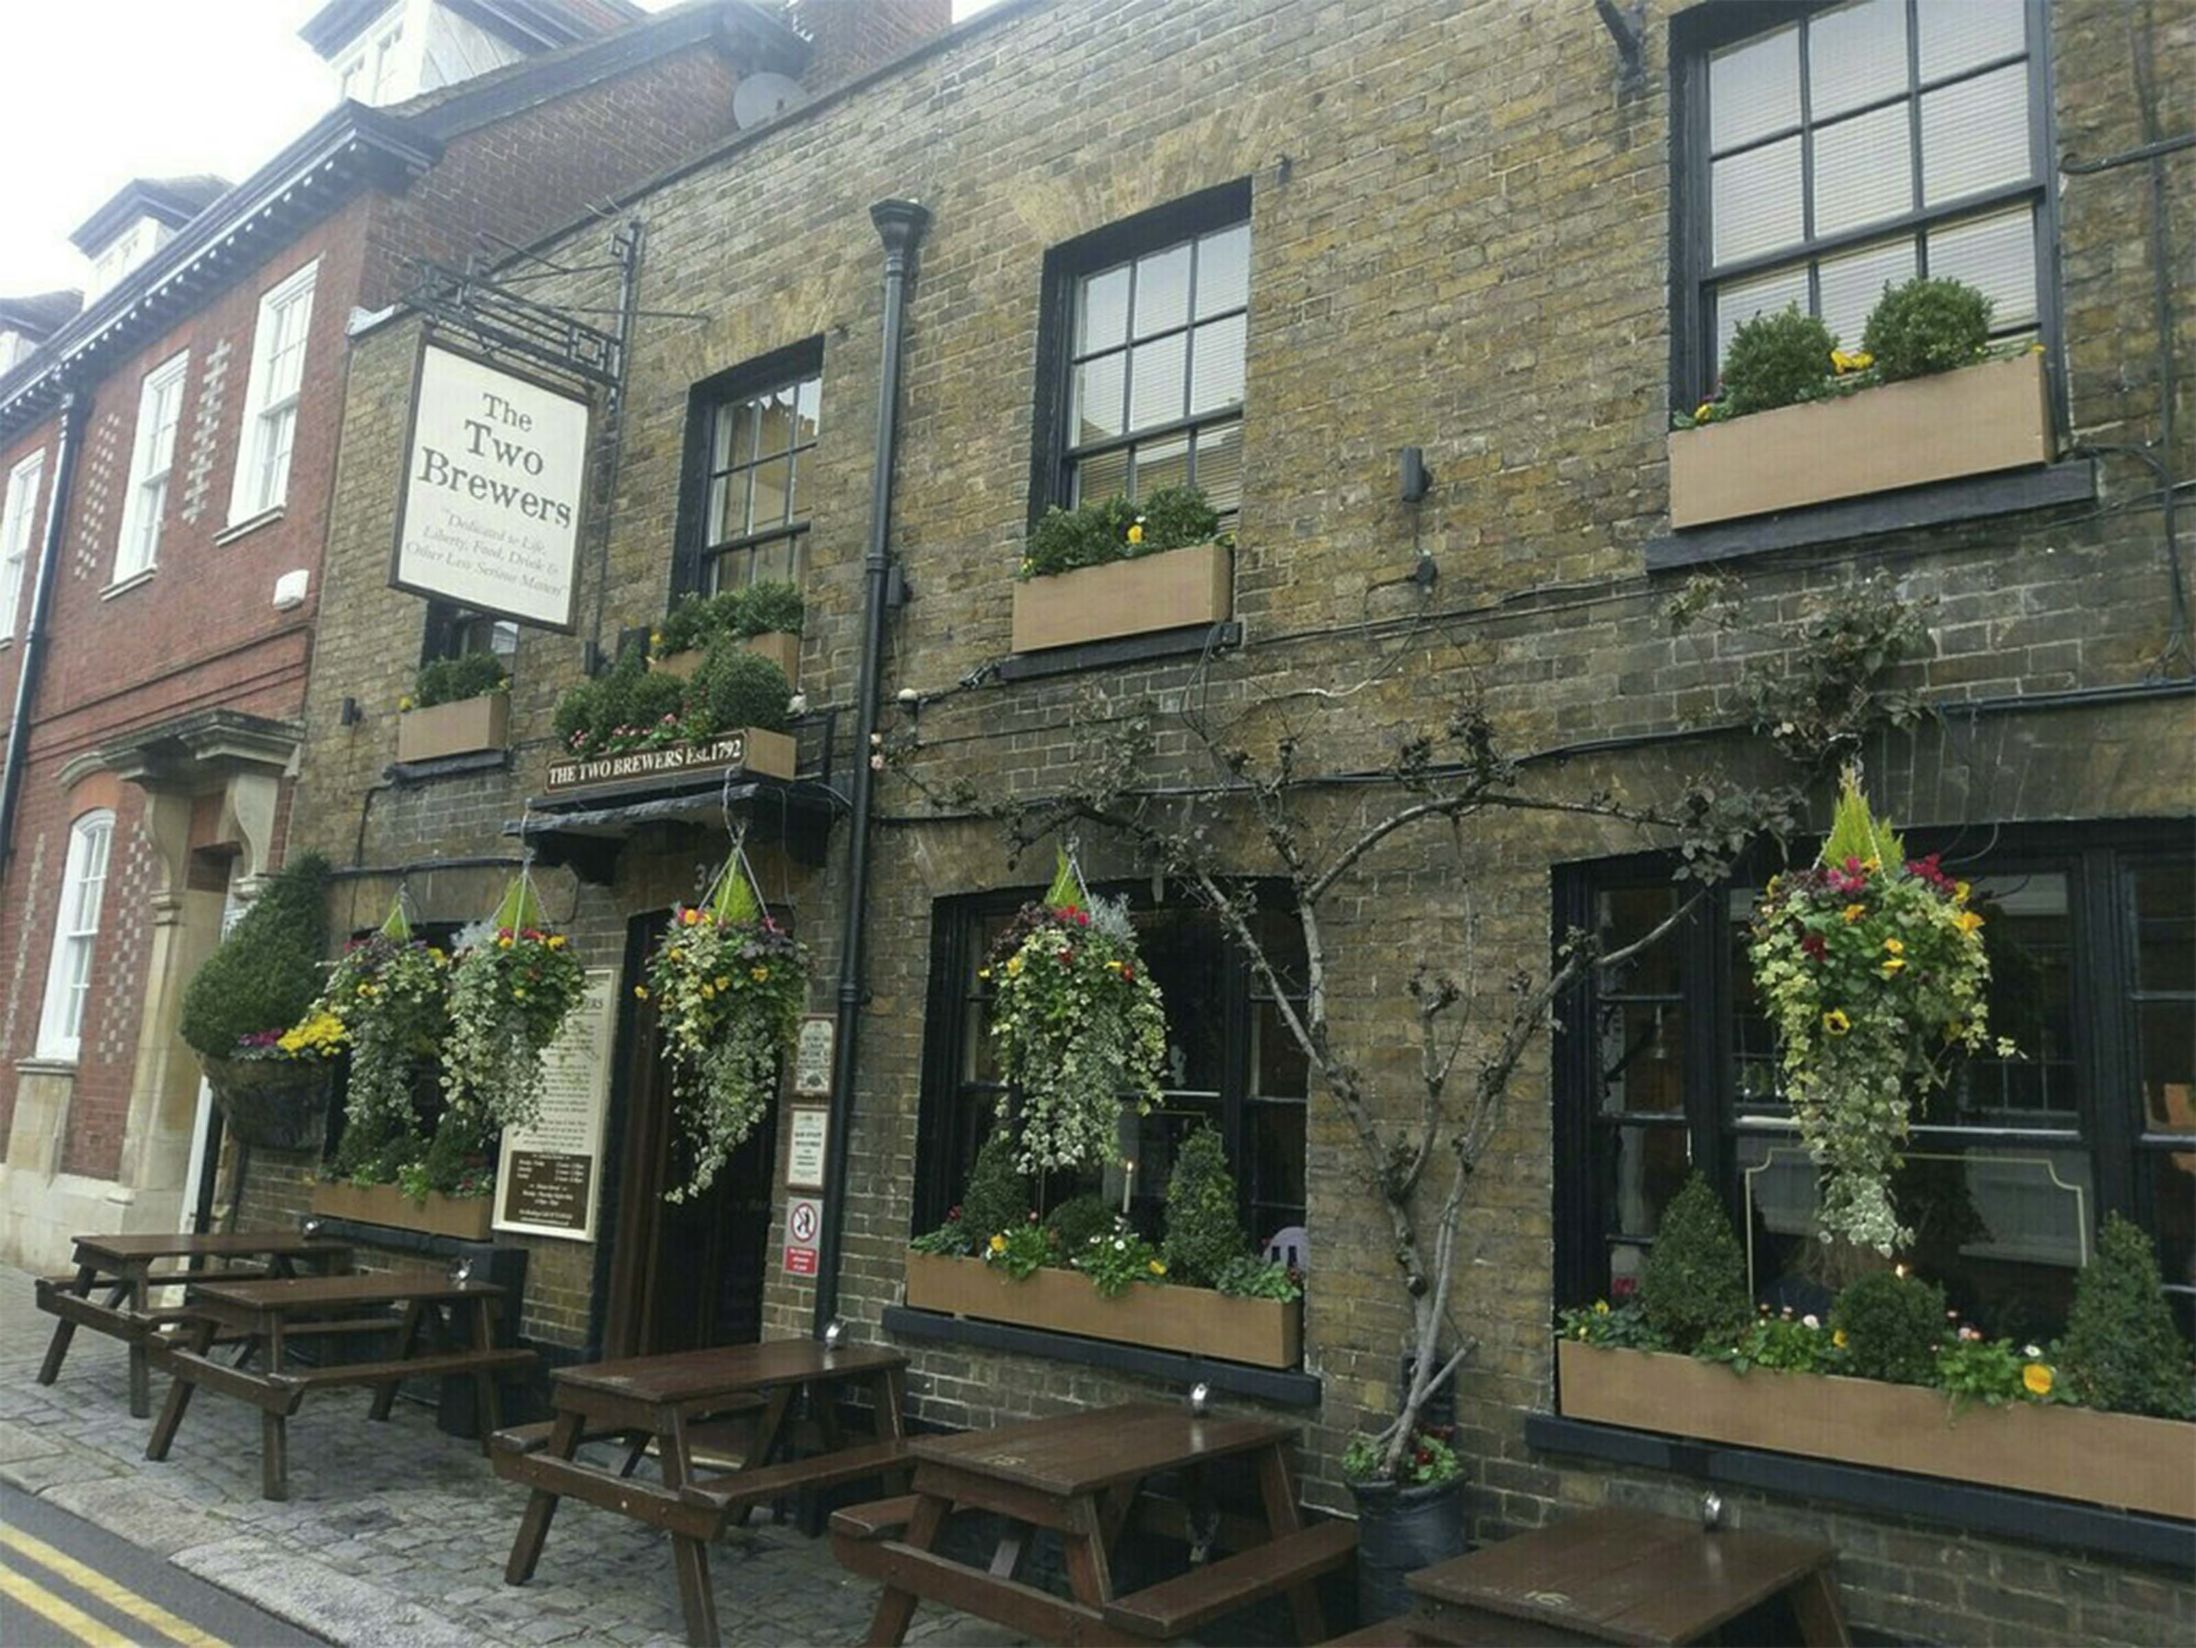 Best Pubs in Windsor - The Two Brewers